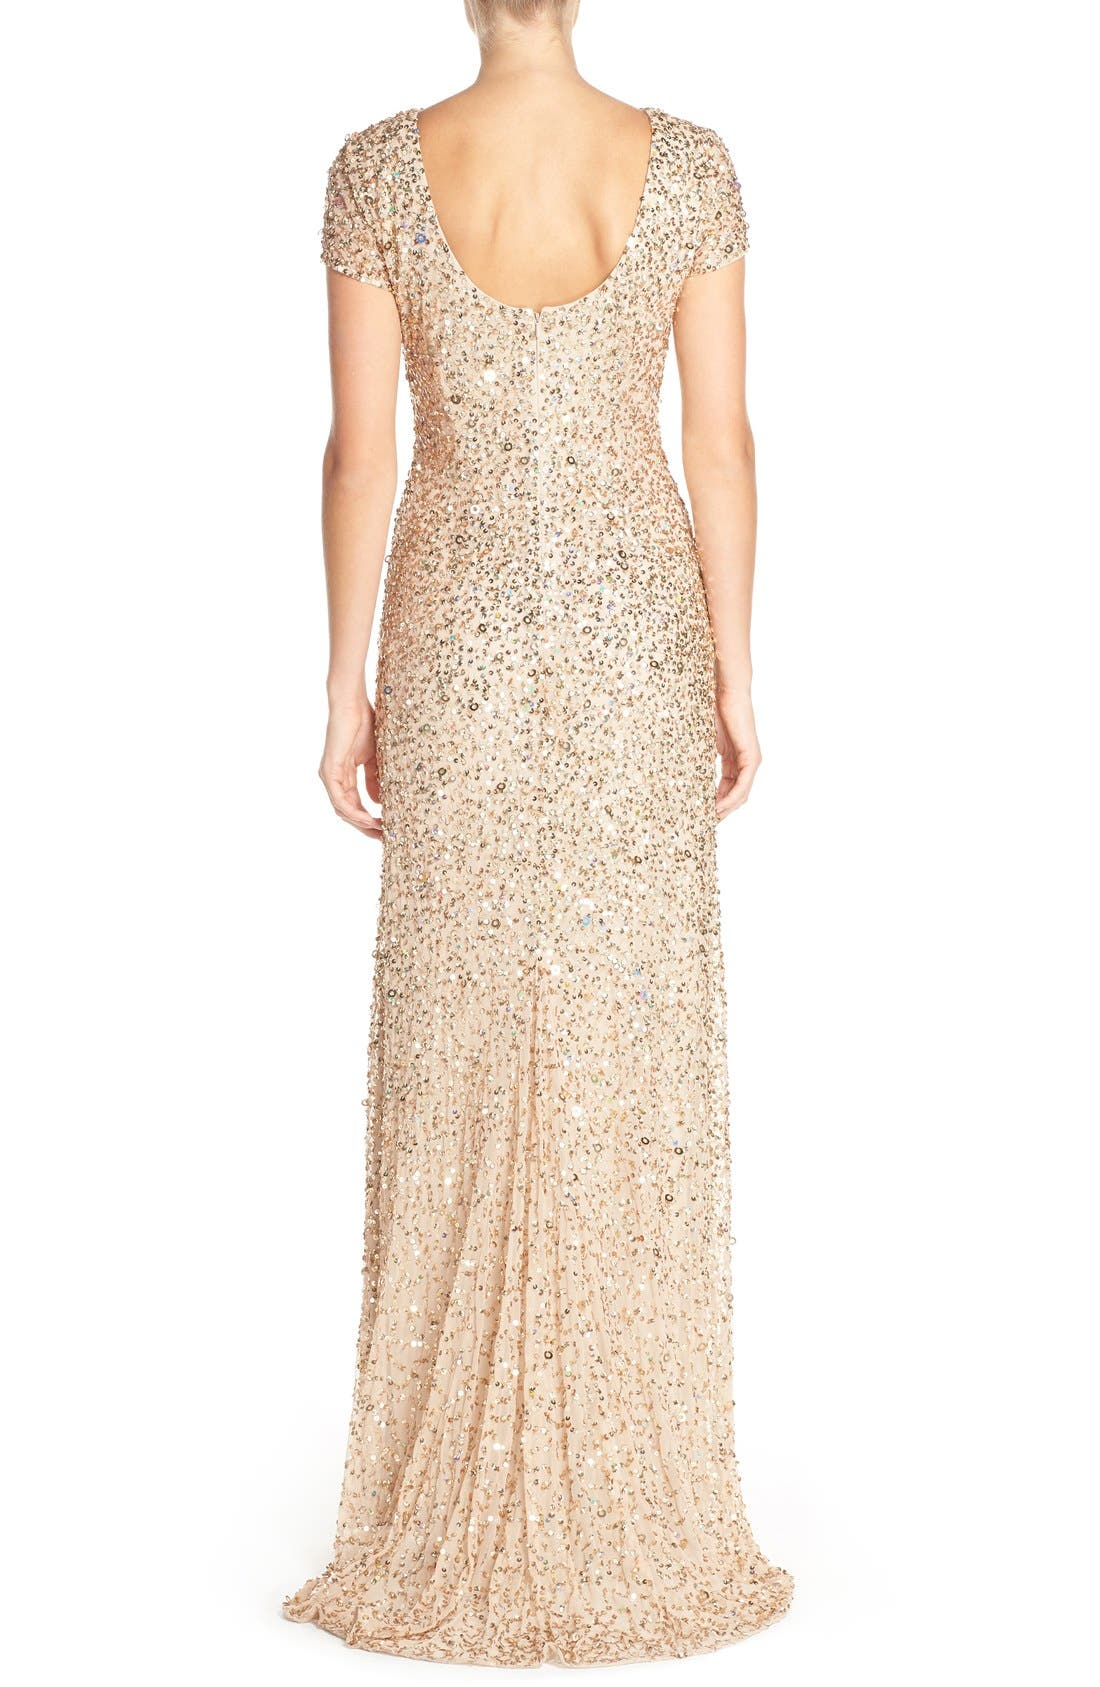 Short Sleeve Sequin Mesh Gown,                             Alternate thumbnail 11, color,                             CHAMPAGNE/ GOLD